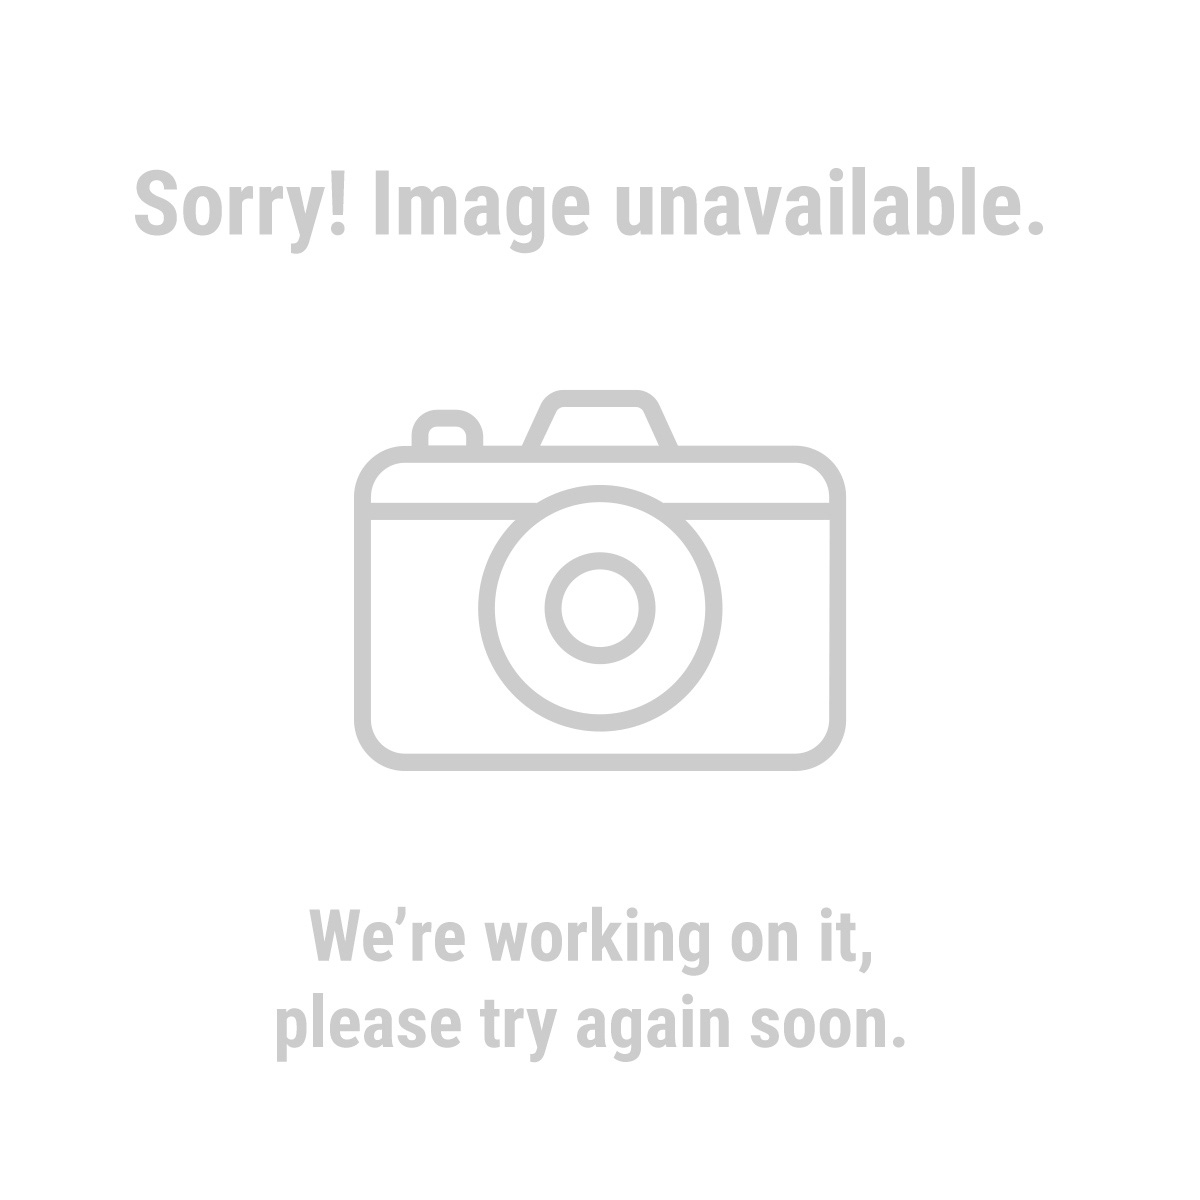 Western Safety Gloves 62614 Swivel Lens Headlamp